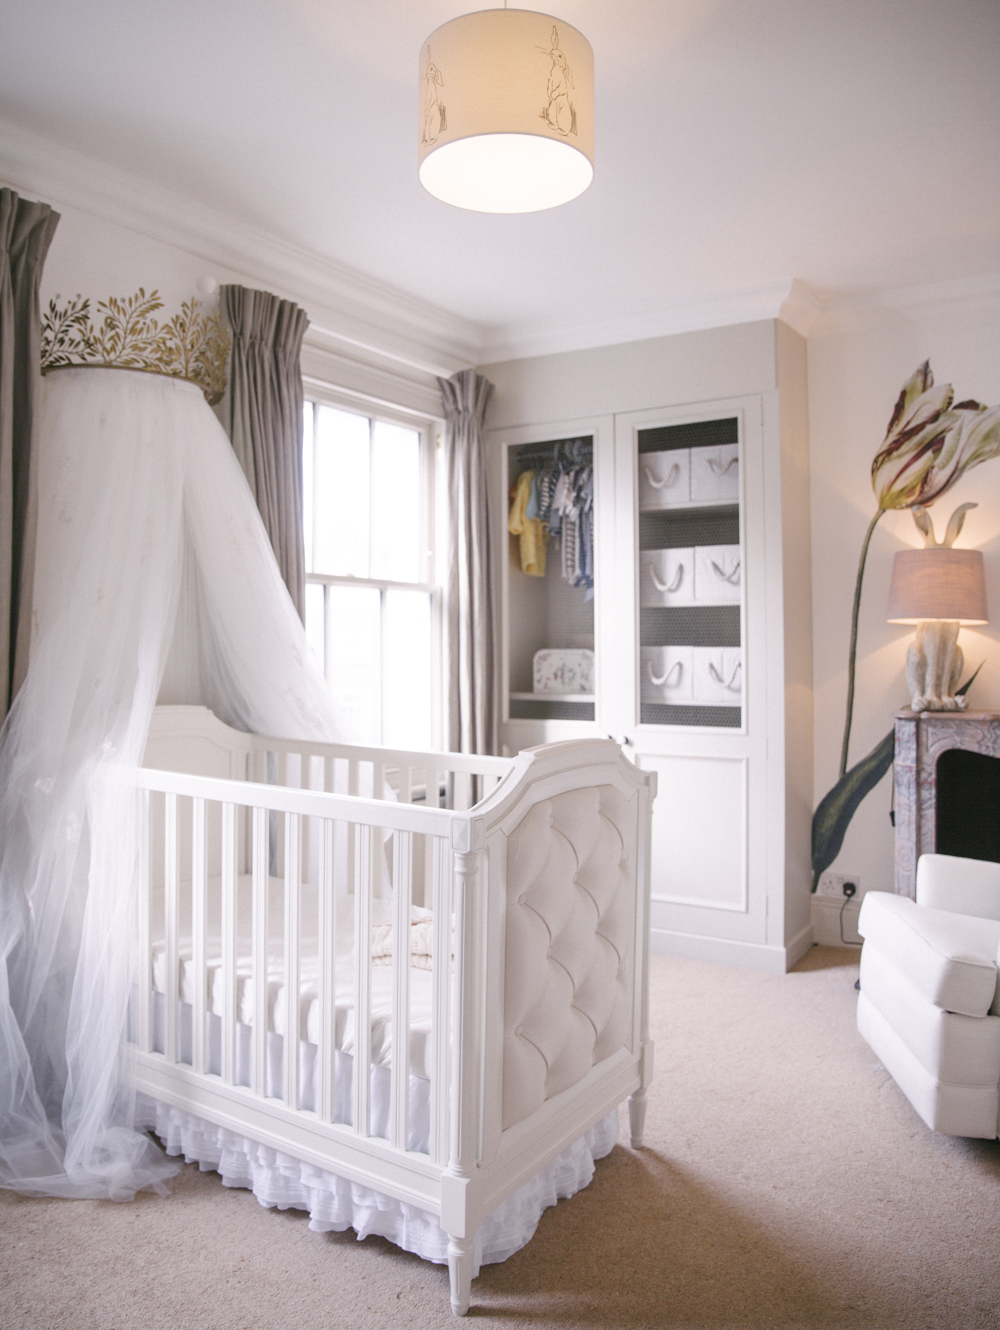 Classically neutral nursery